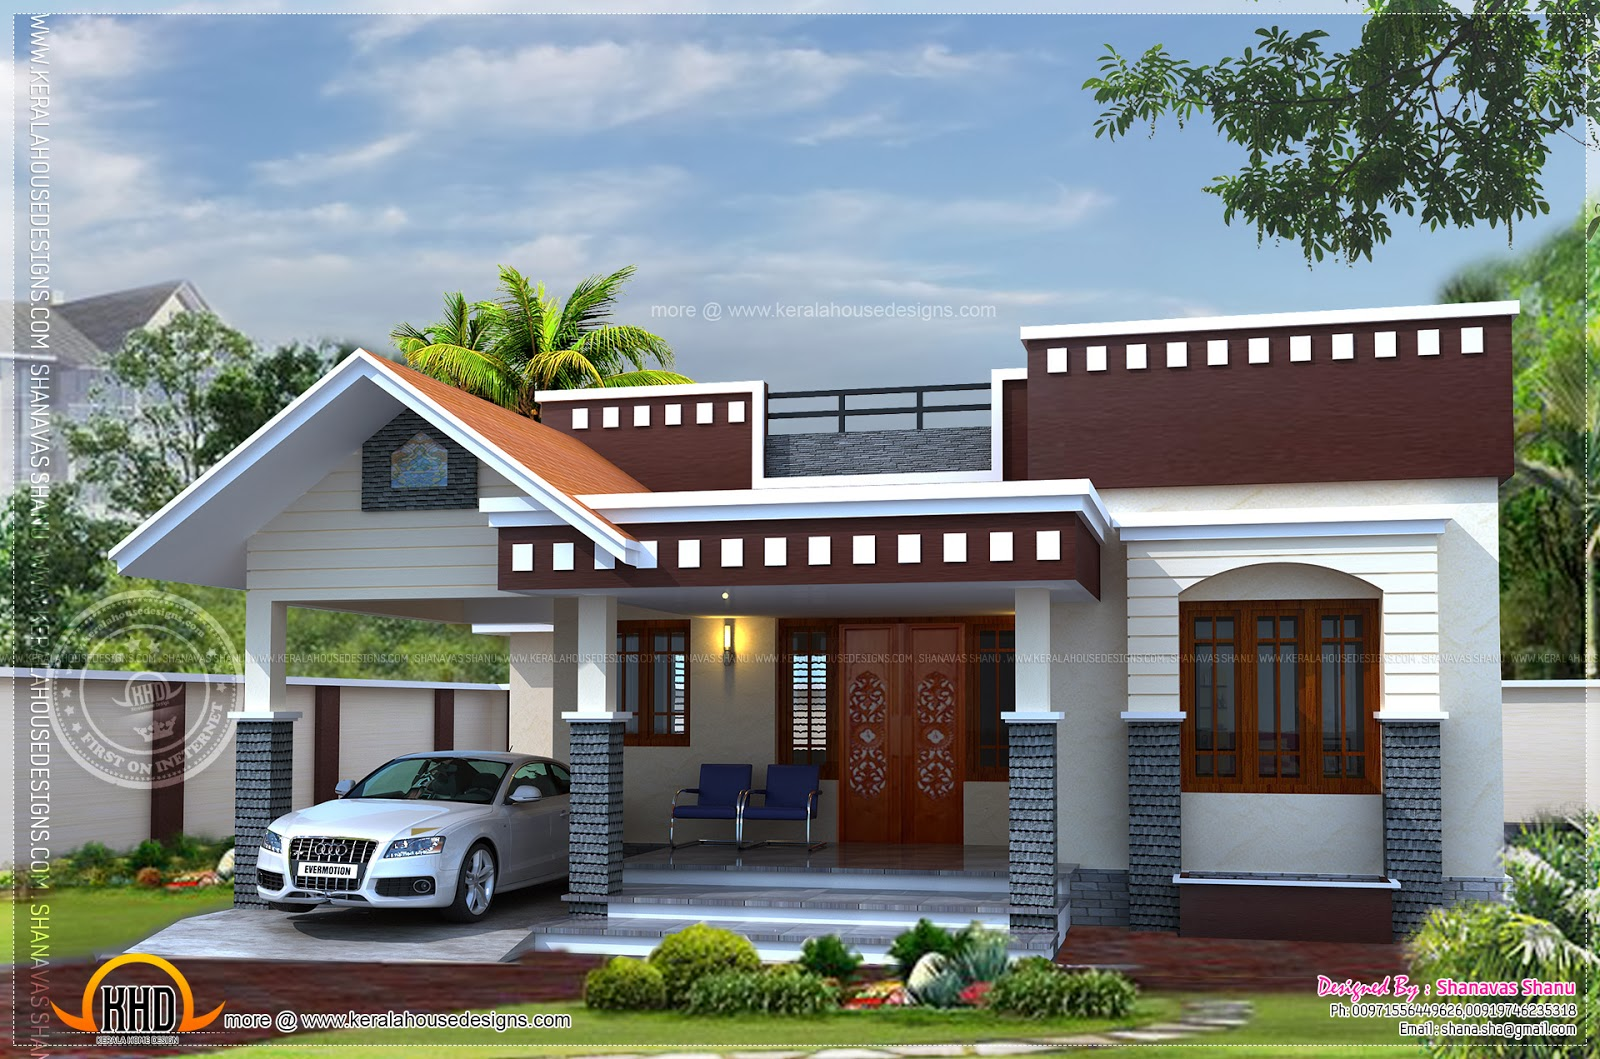 Home plan of small house kerala home design and floor plans for Small house plans